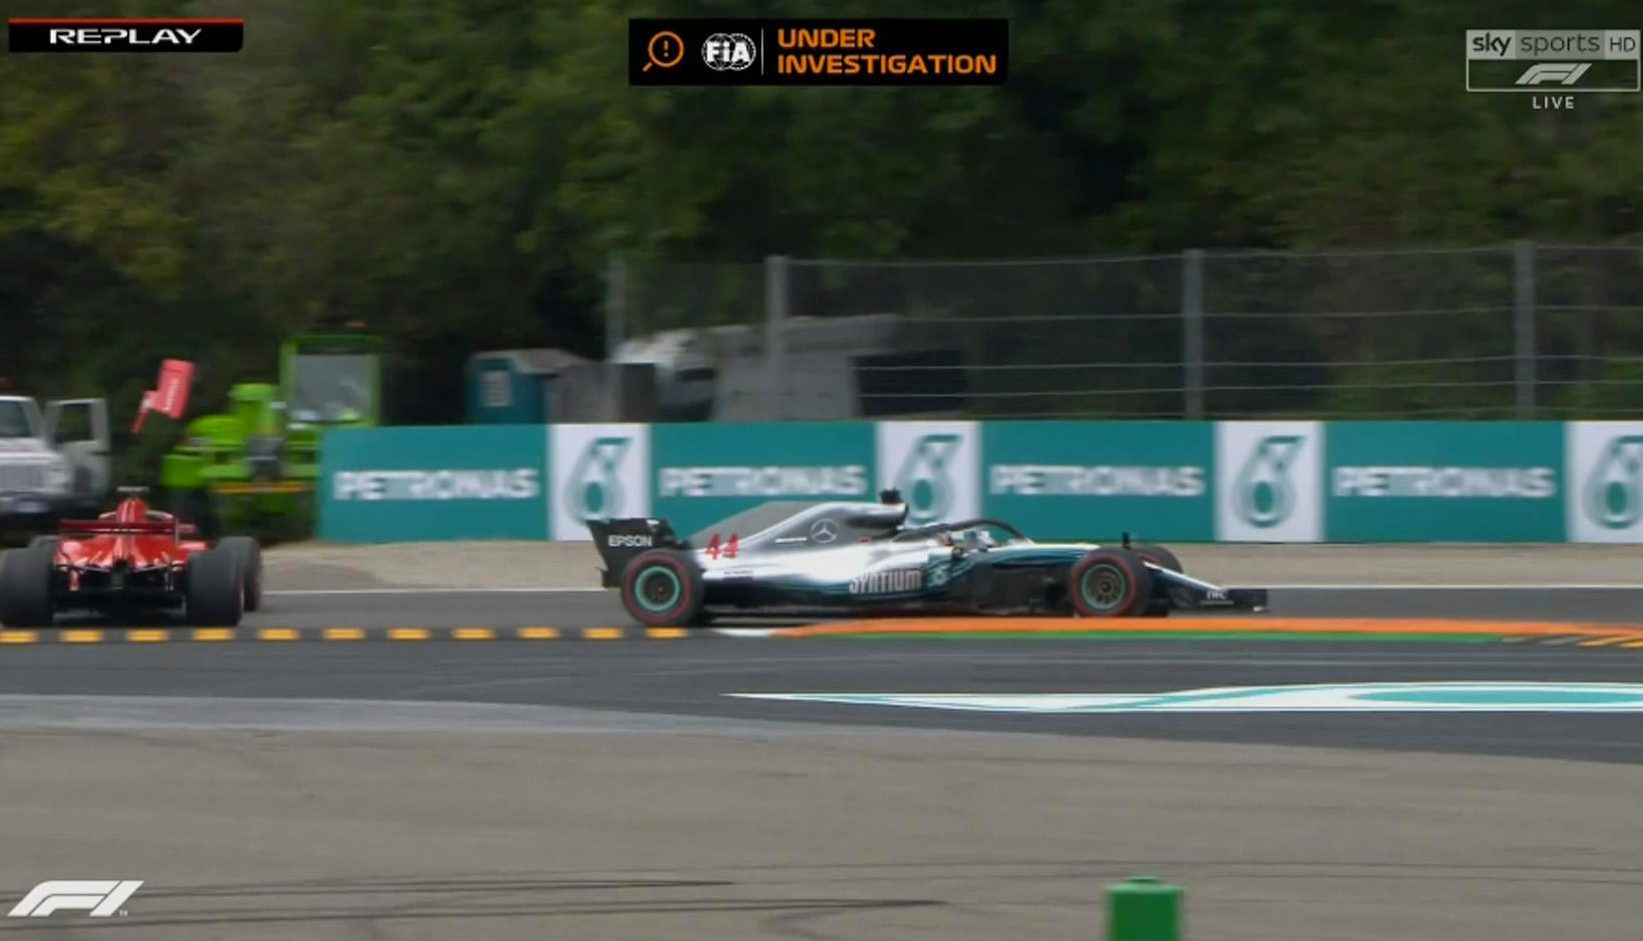 A piece of Ferrari bodywork flies into the air as Vettel spins out at the fourth corner